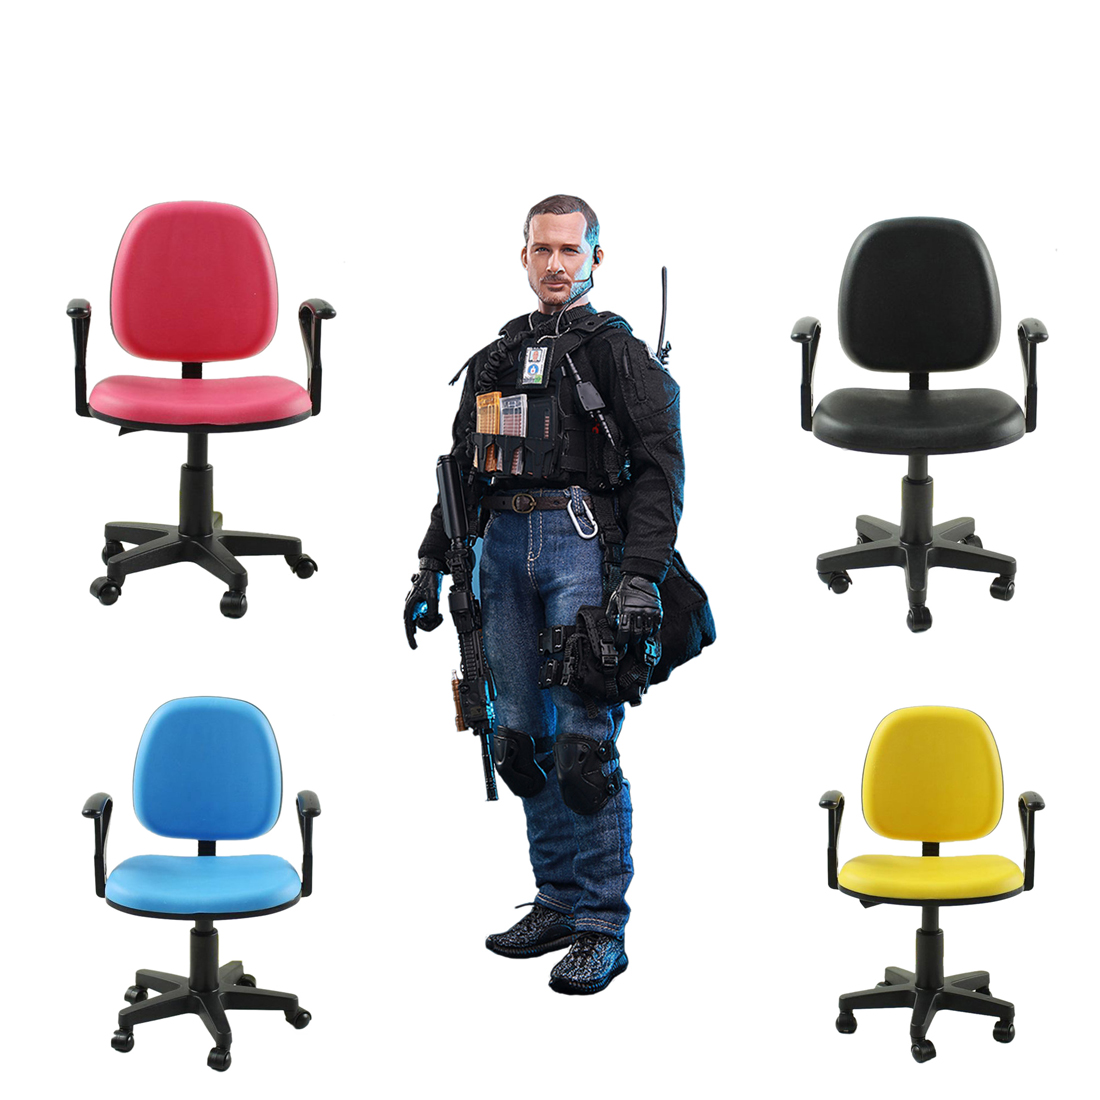 MODIKER Swivel Chair Model Toy Computer Desk with Armrest for 1:6 12 Soldier Action Figures Doll Story Scenes